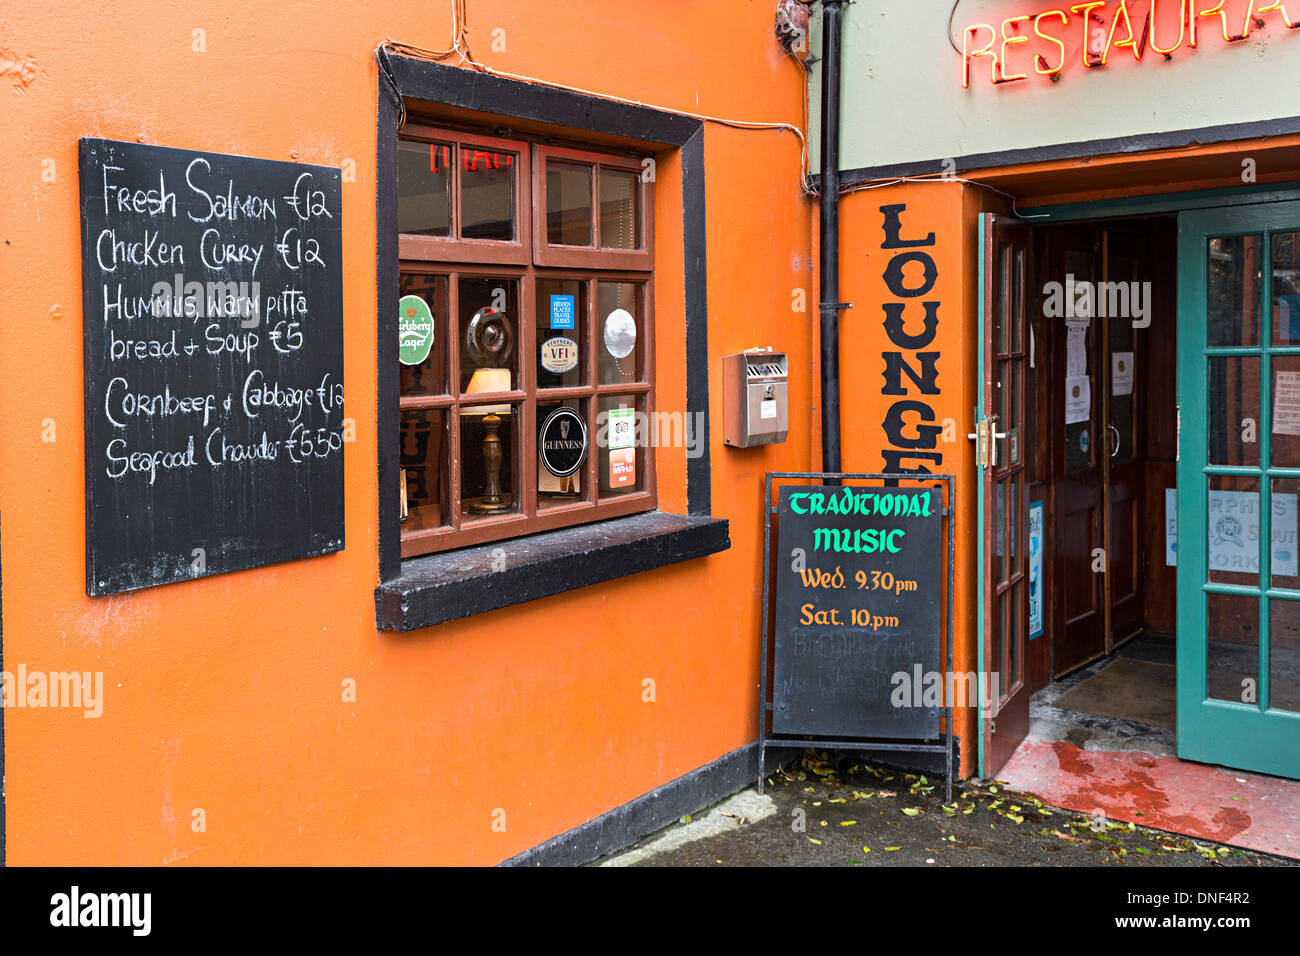 Signs for live music and menu outside bar and restaurant, Corofin, Co. Clare, Ireland - Stock Image